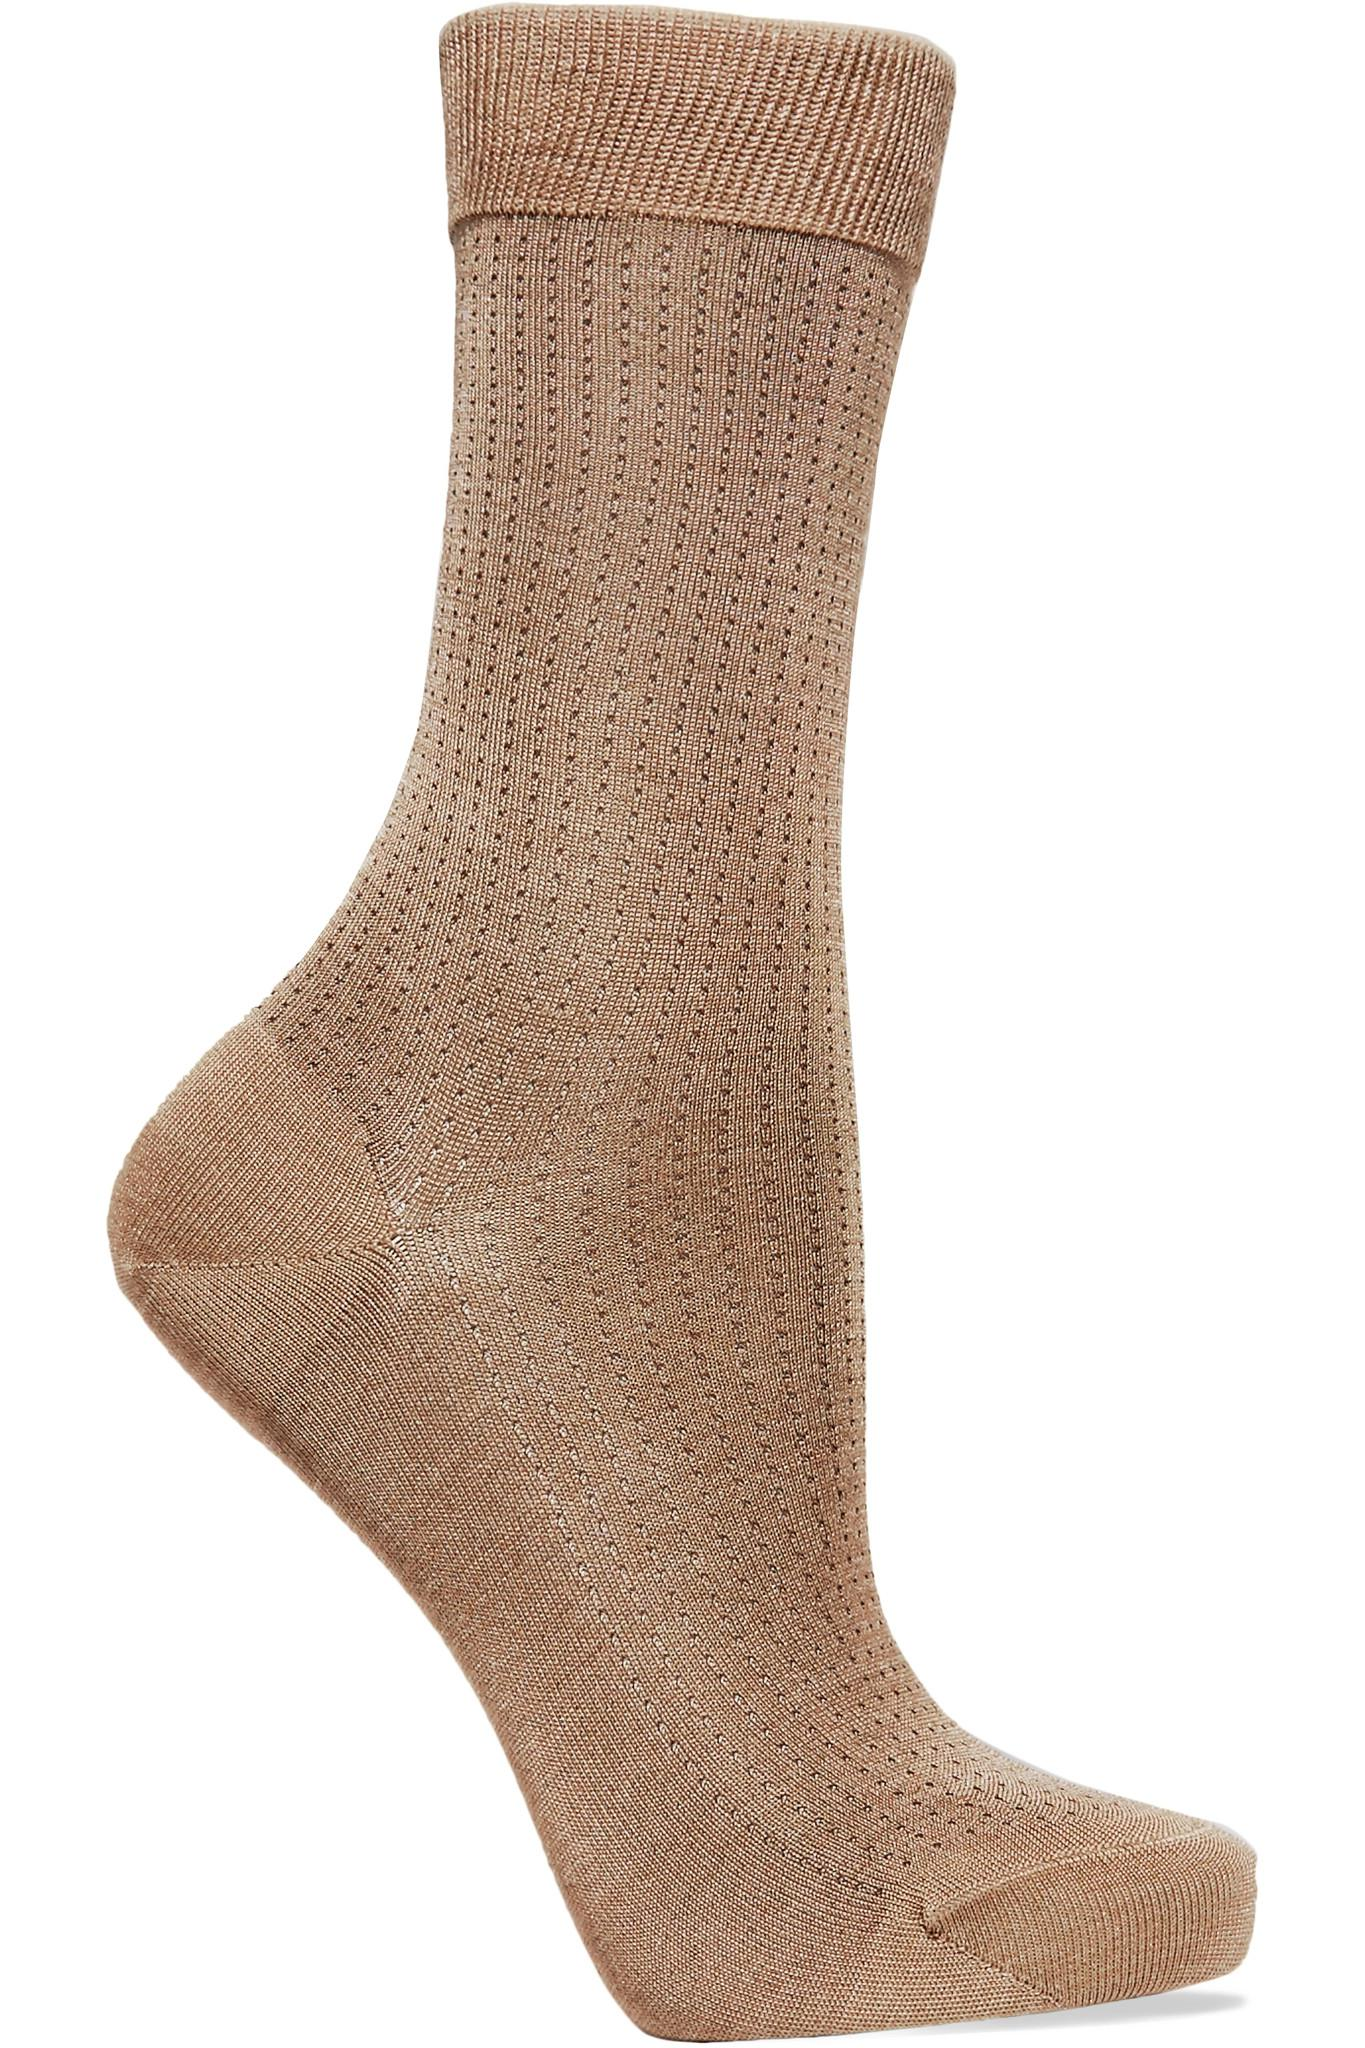 No.2 Pointelle Silk-blend Socks - Taupe Falke Shop Offer Online Cheap The Cheapest Clearance Store E2IYvW